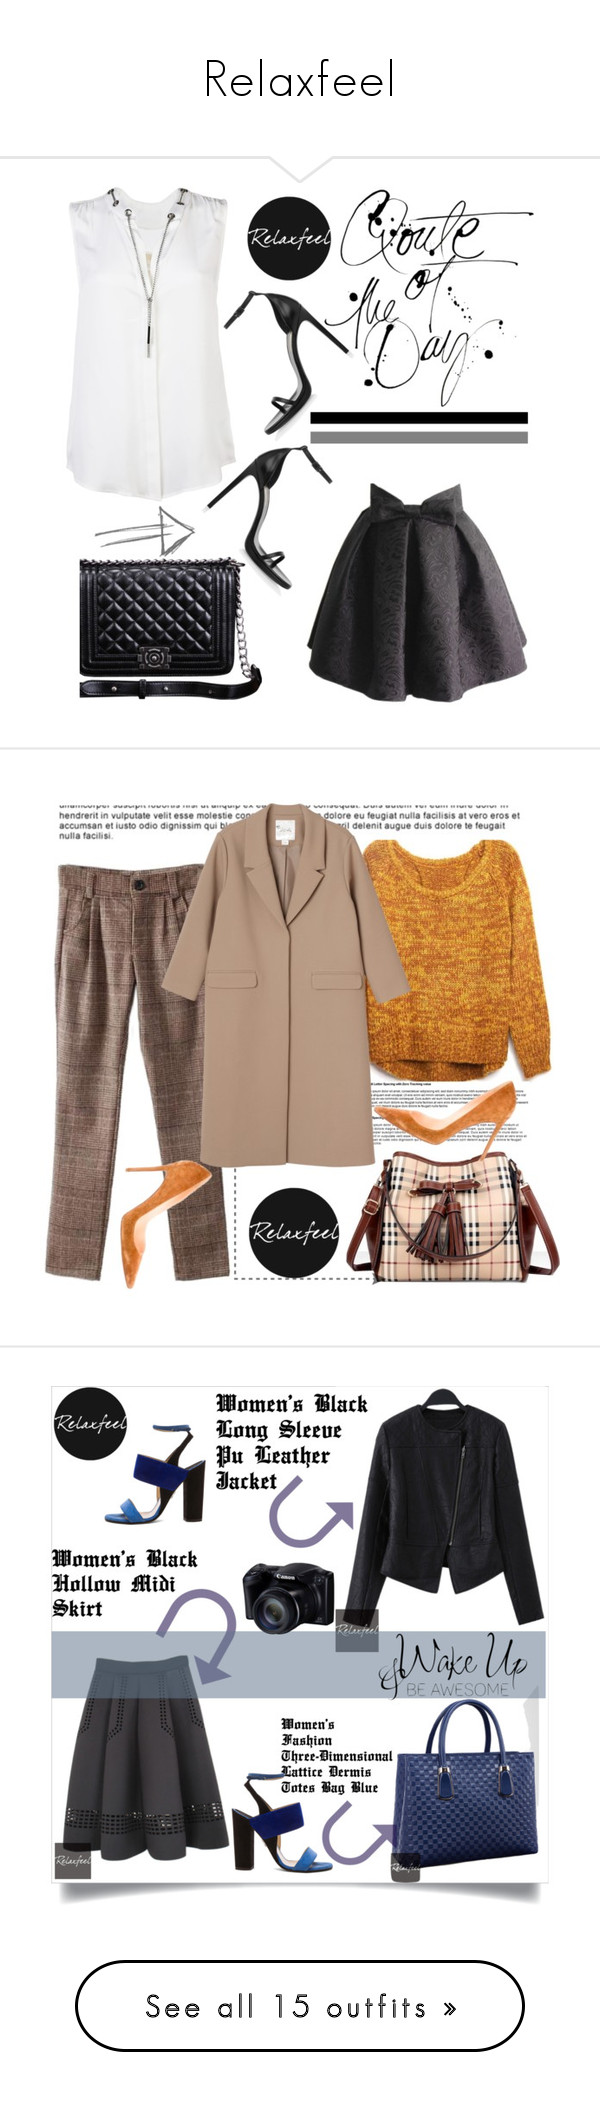 """Relaxfeel"" by amra-mak ❤ liked on Polyvore featuring Relaxfeel, MICHAEL Michael Kors, Yves Saint Laurent, vintage, Monki, Christian Louboutin, Paul Andrew, Kate Spade, 8 and Manolo Blahnik"